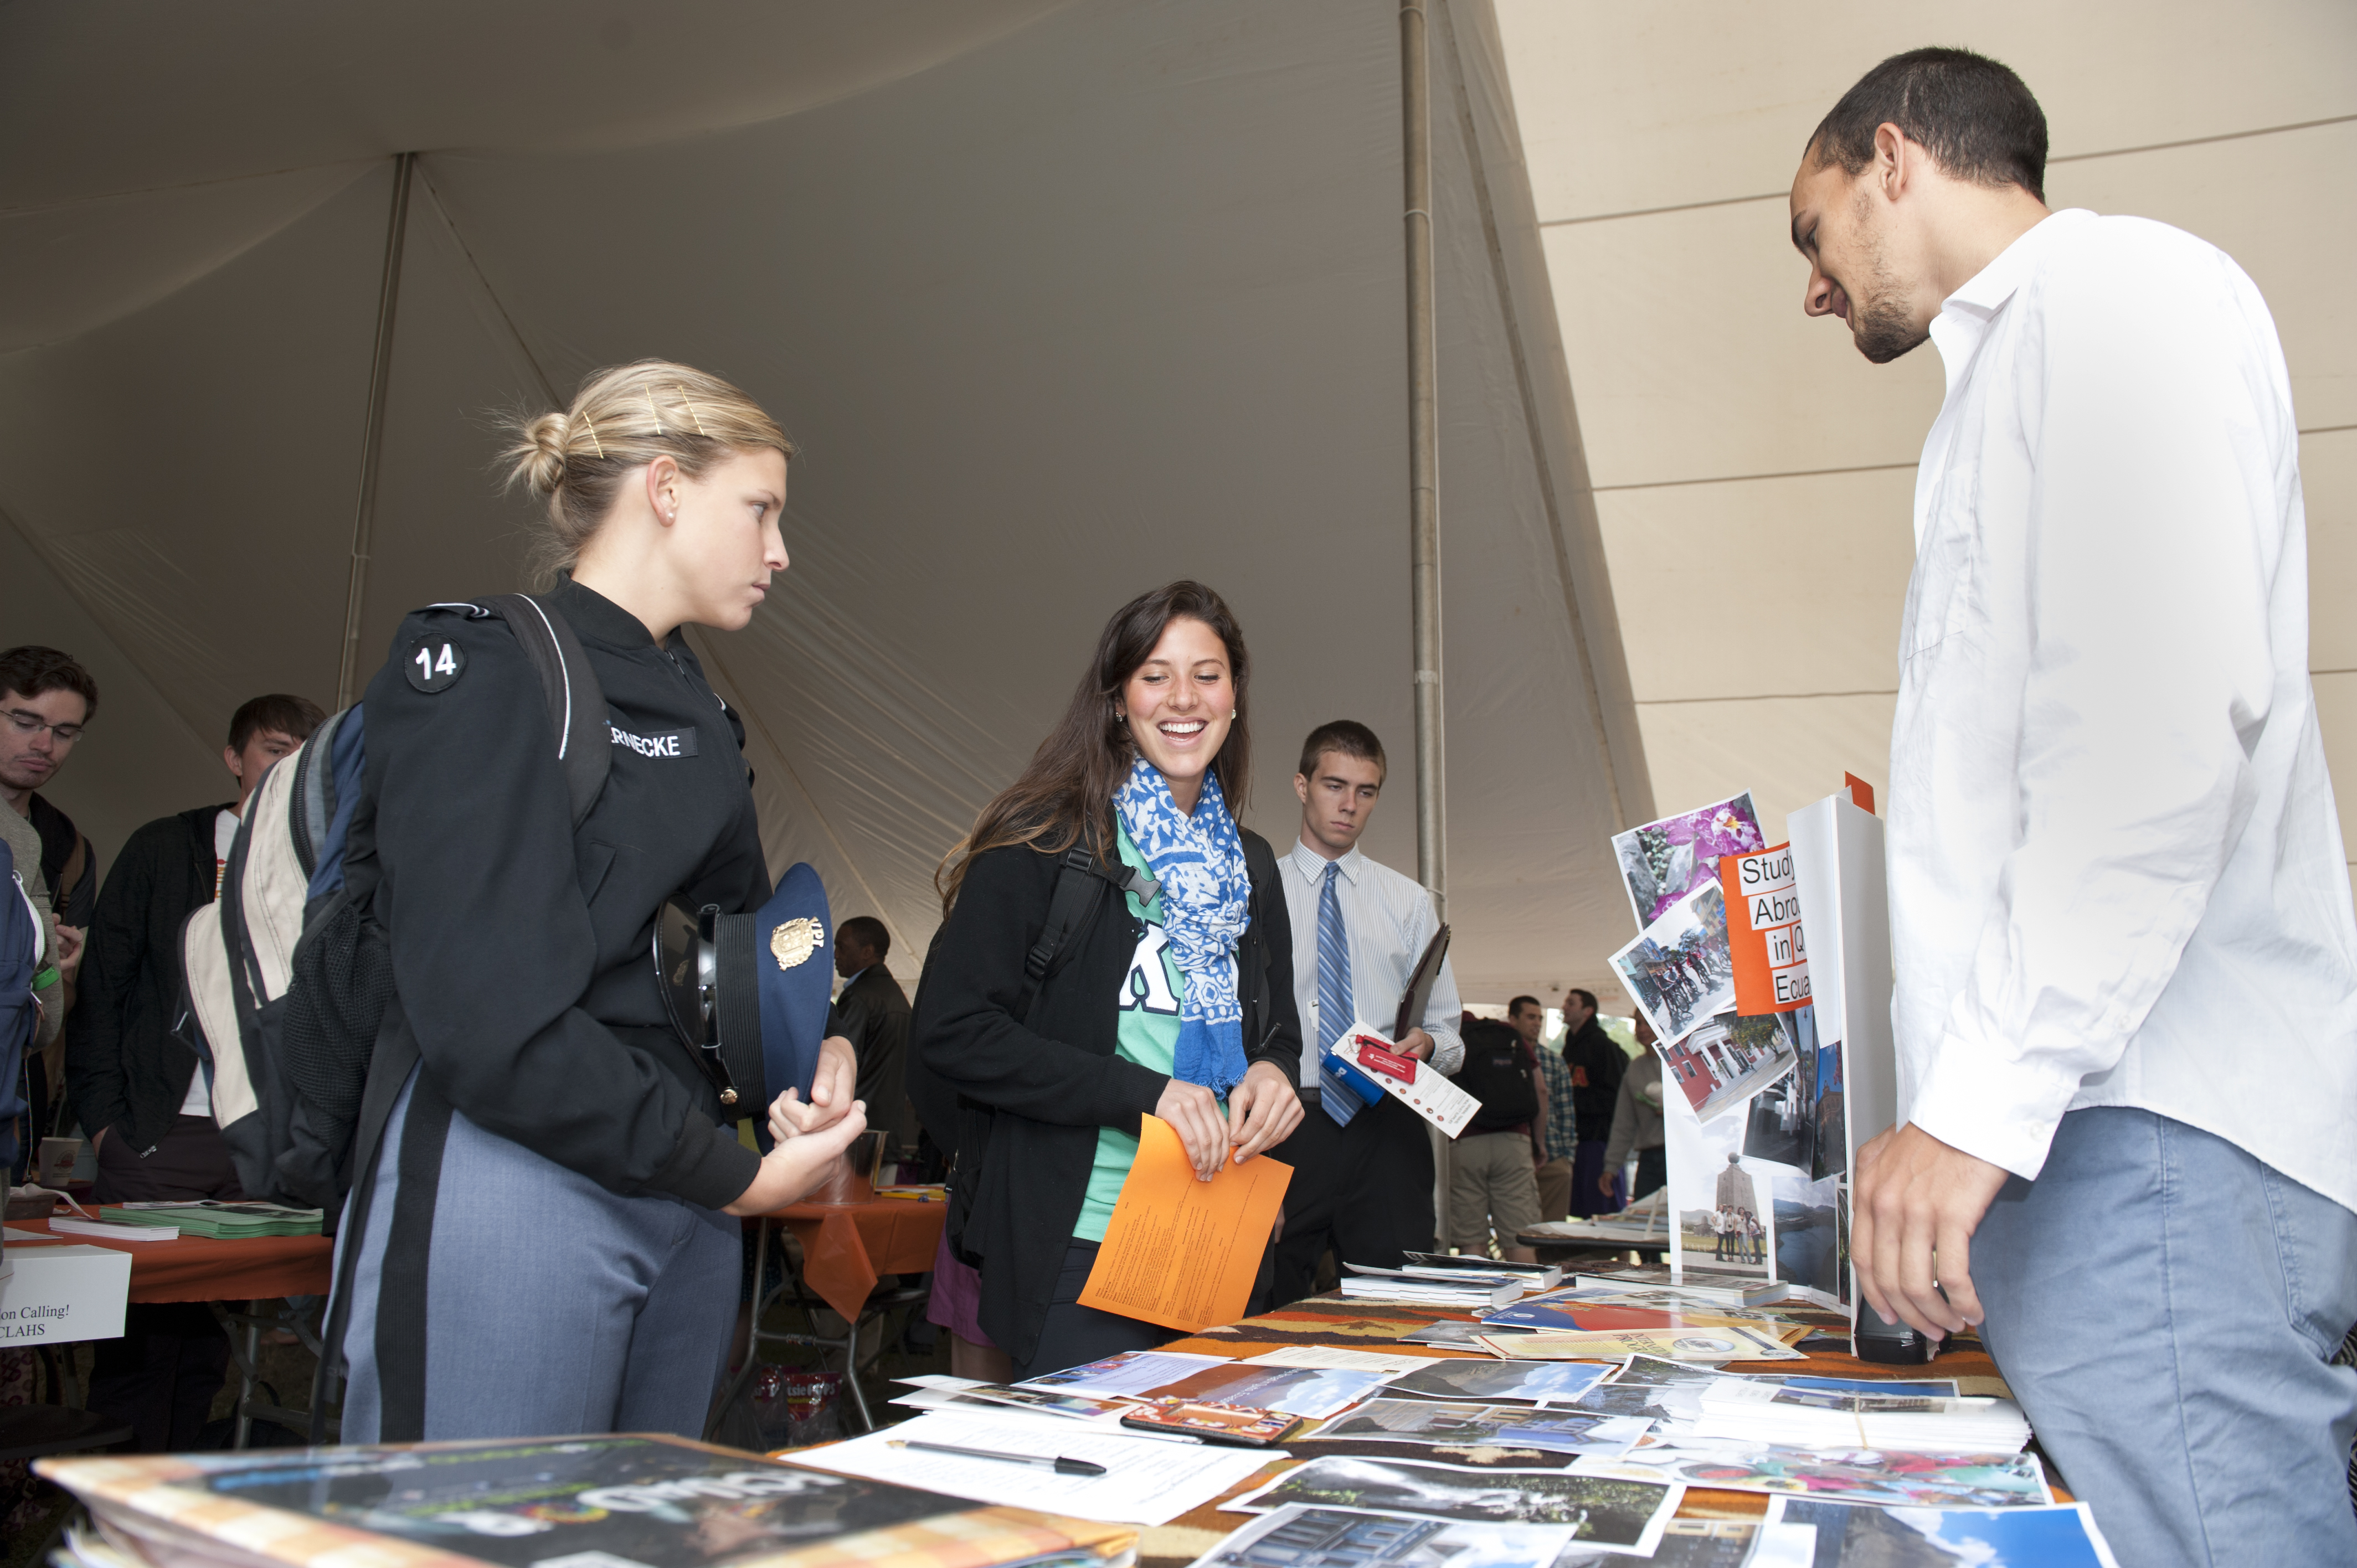 Students gather information at the Global Education Fair.